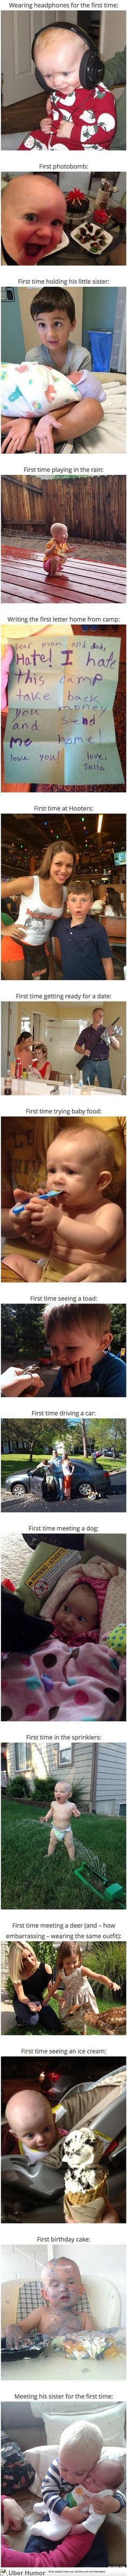 First Time For Everythingツ #Humor #Funny #Lol: